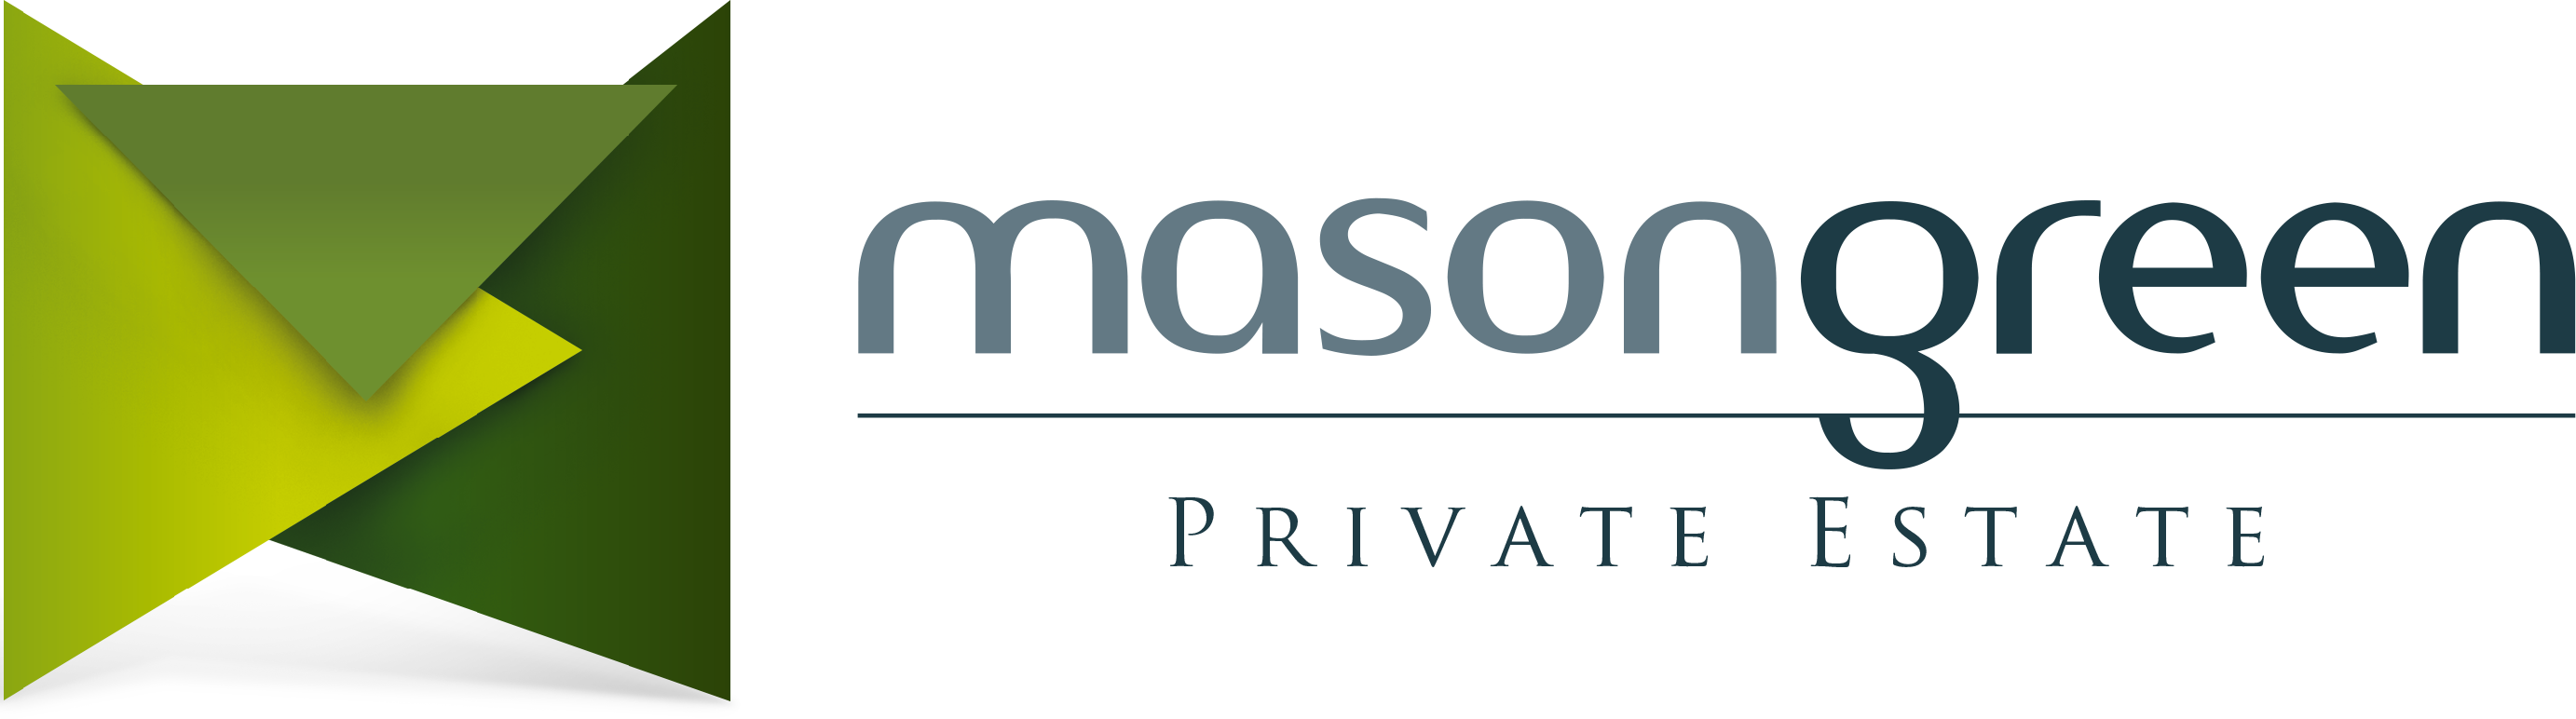 Masongreen logo